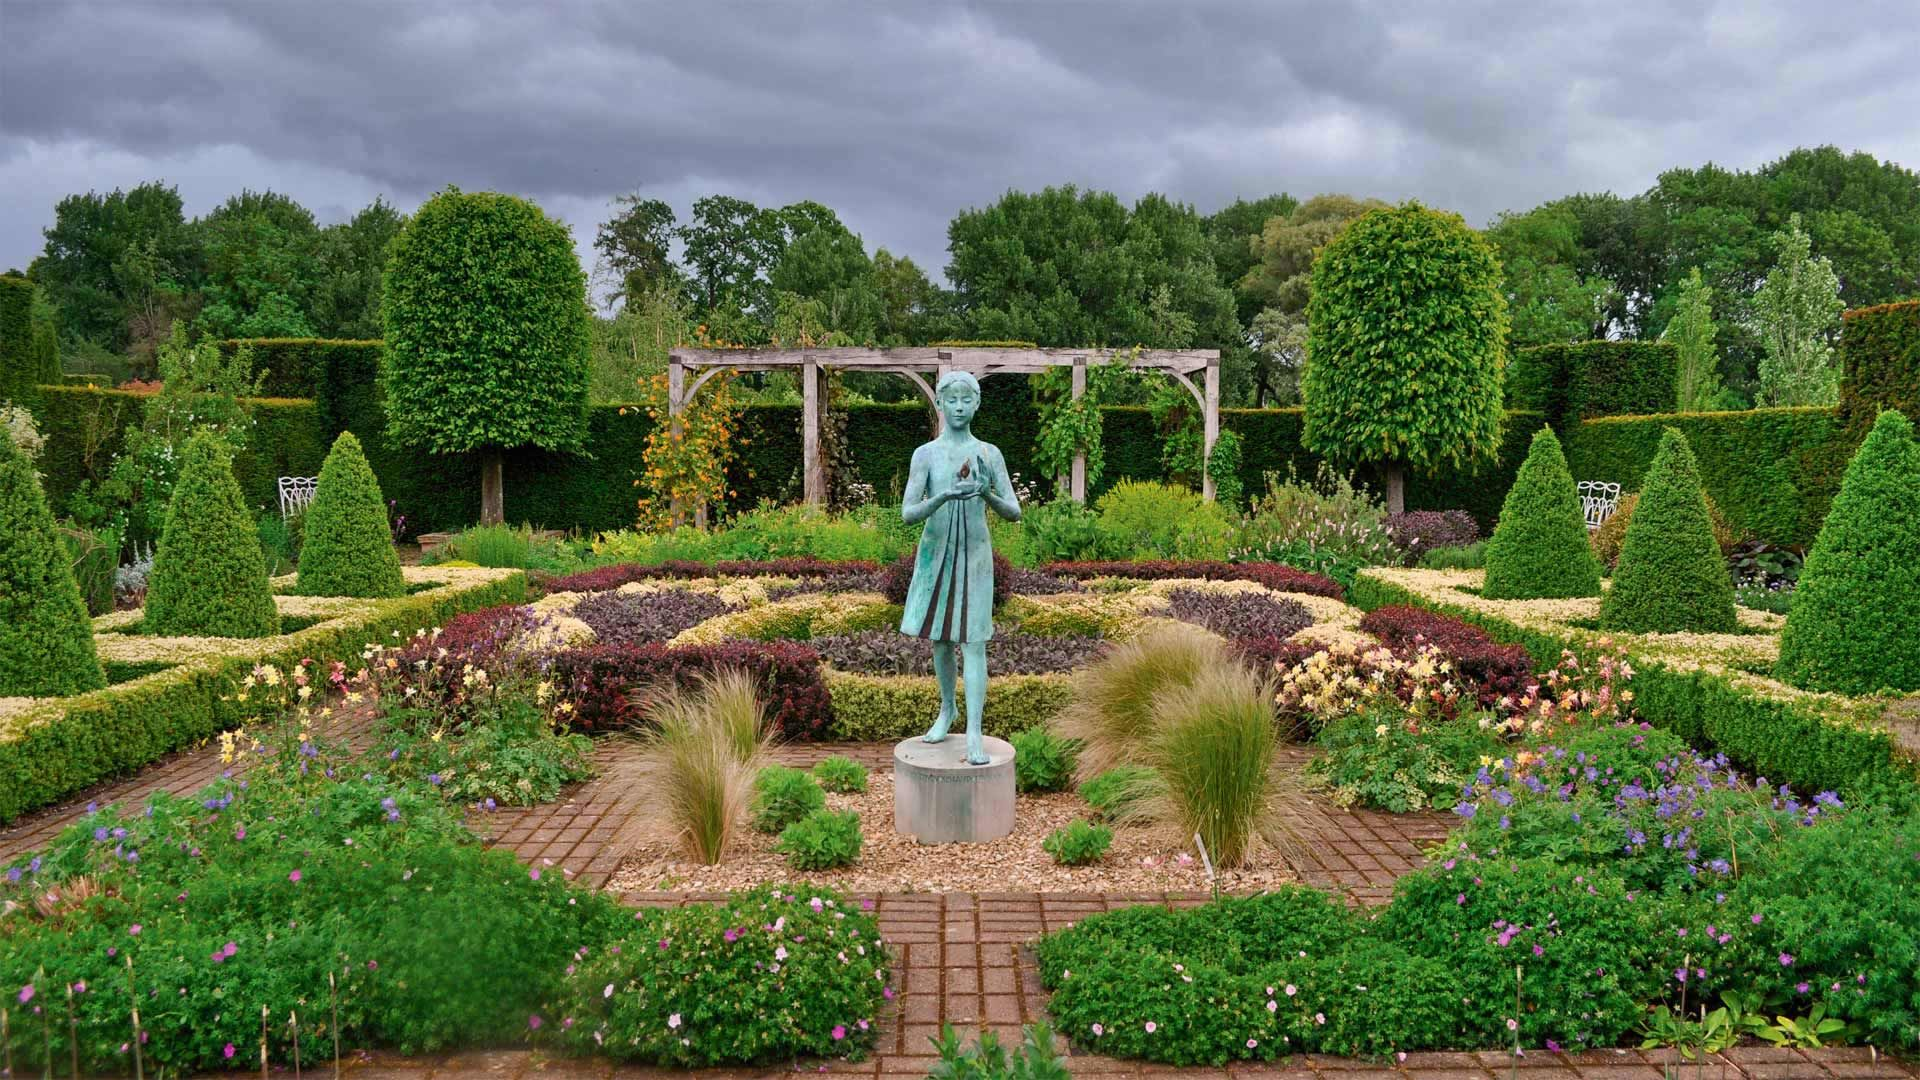 Waterperry Gardens in Oxfordshire, England